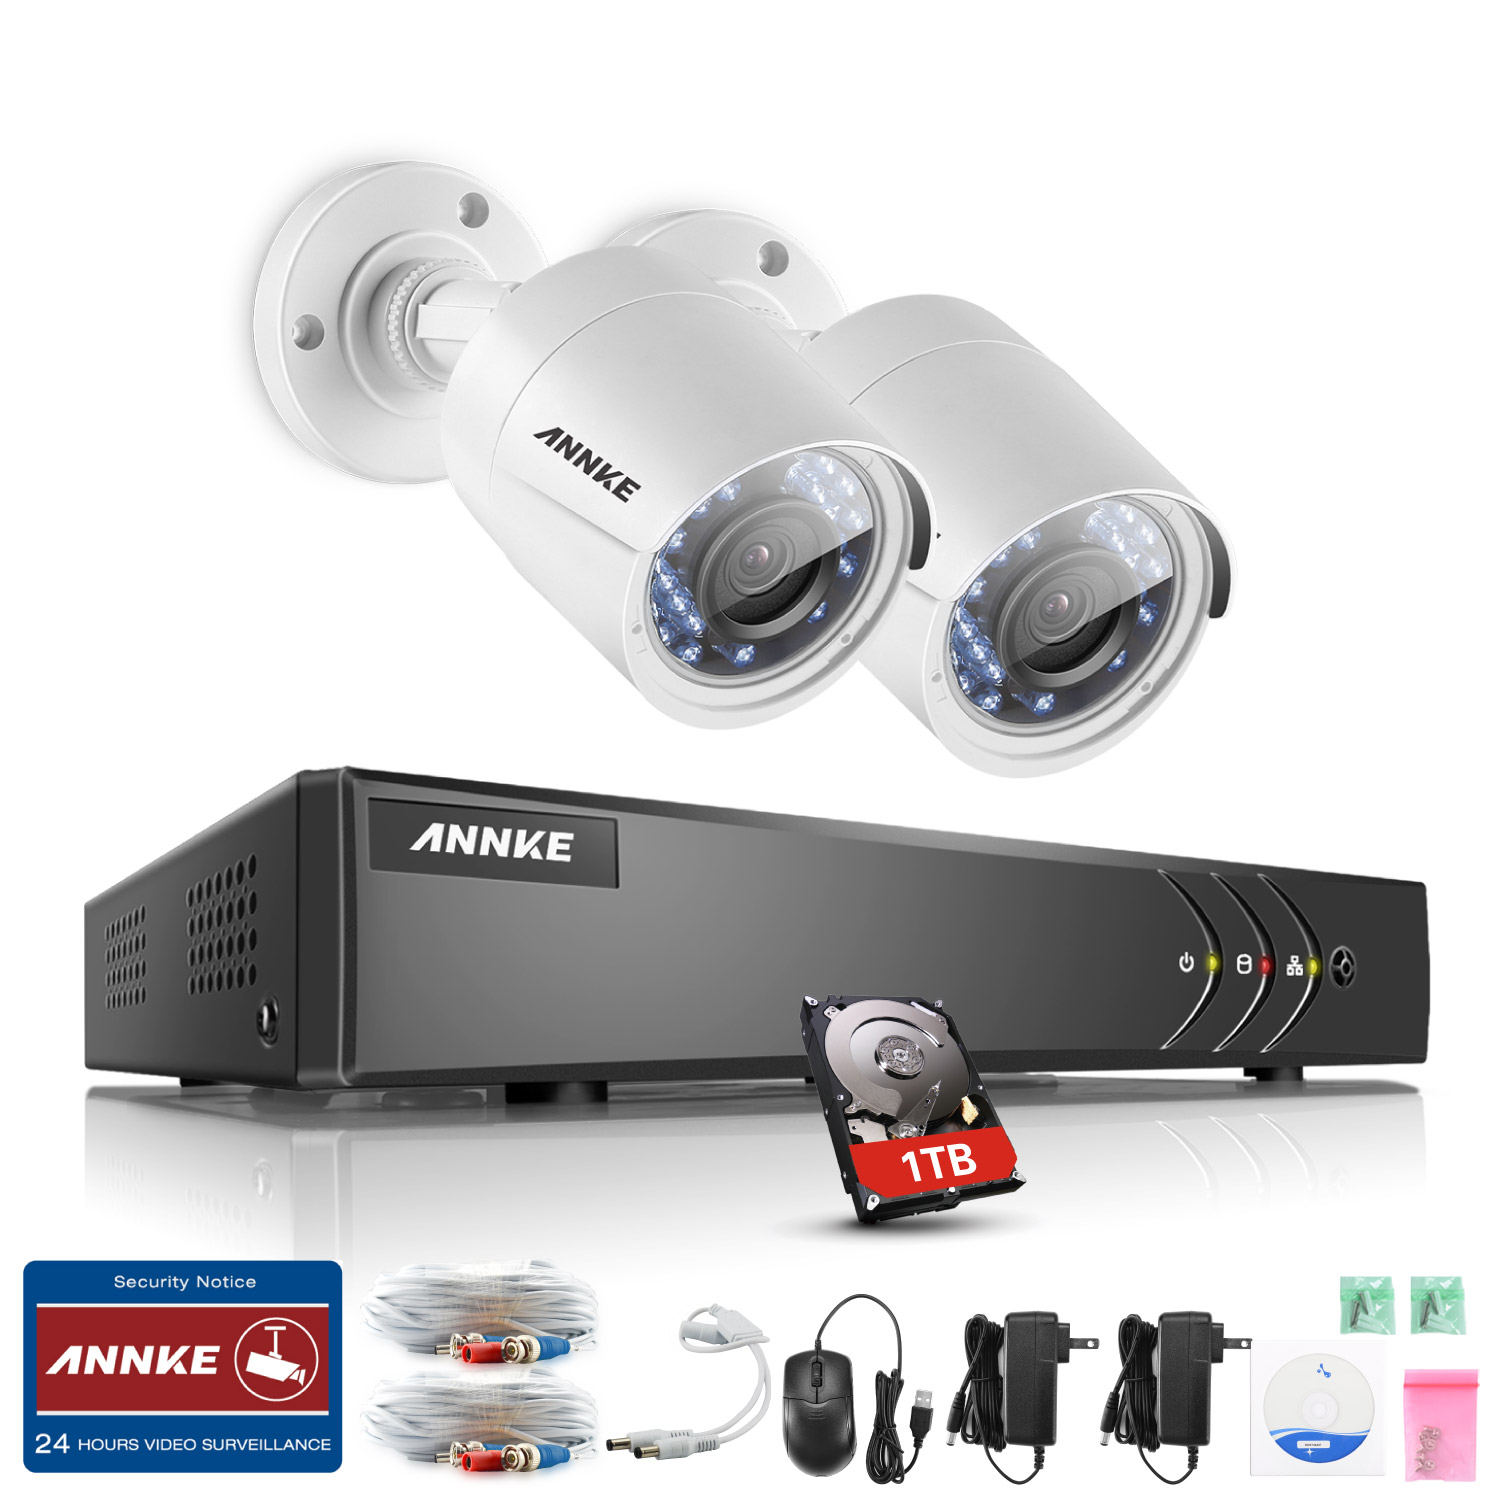 ANNKE 4CH 720P Security DVR Security System and 2Pcs Indoor/Outdoor Weatherproof 1.0MP Cameras-Black& NO Hard Drive Disk